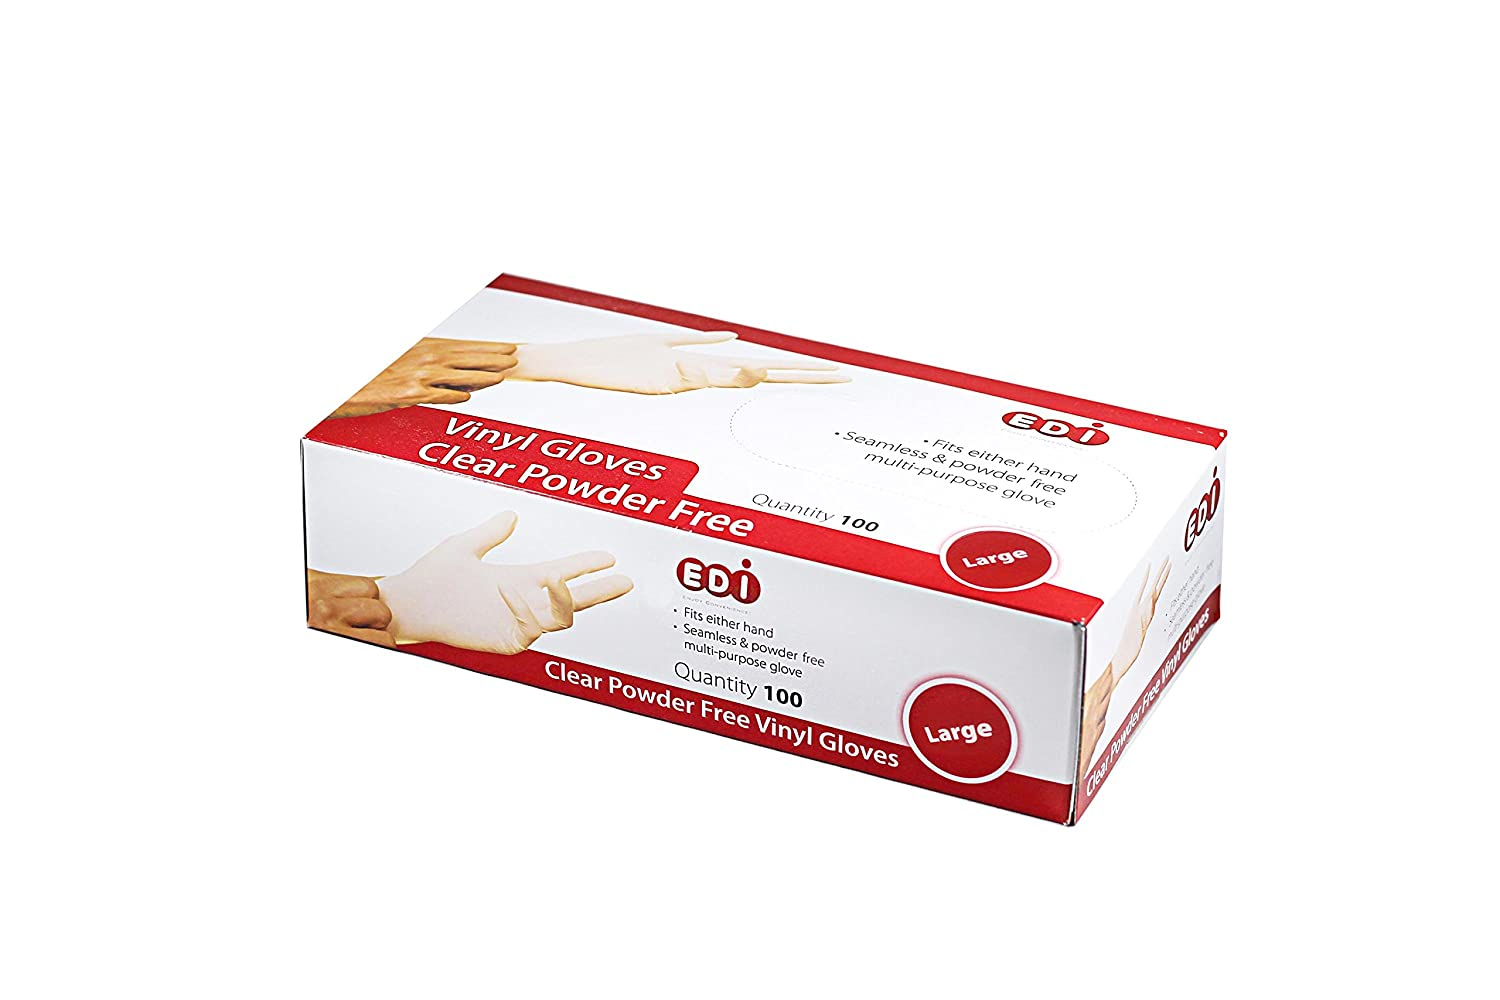 EDI Clear Powder Free Vinyl Glove,Disposable Glove,Industrial Glove,Clear, Latex Free and Allergy Free, Plastic, Work, Food Service, Cleaning,100 Gloves per Box (100, Large)